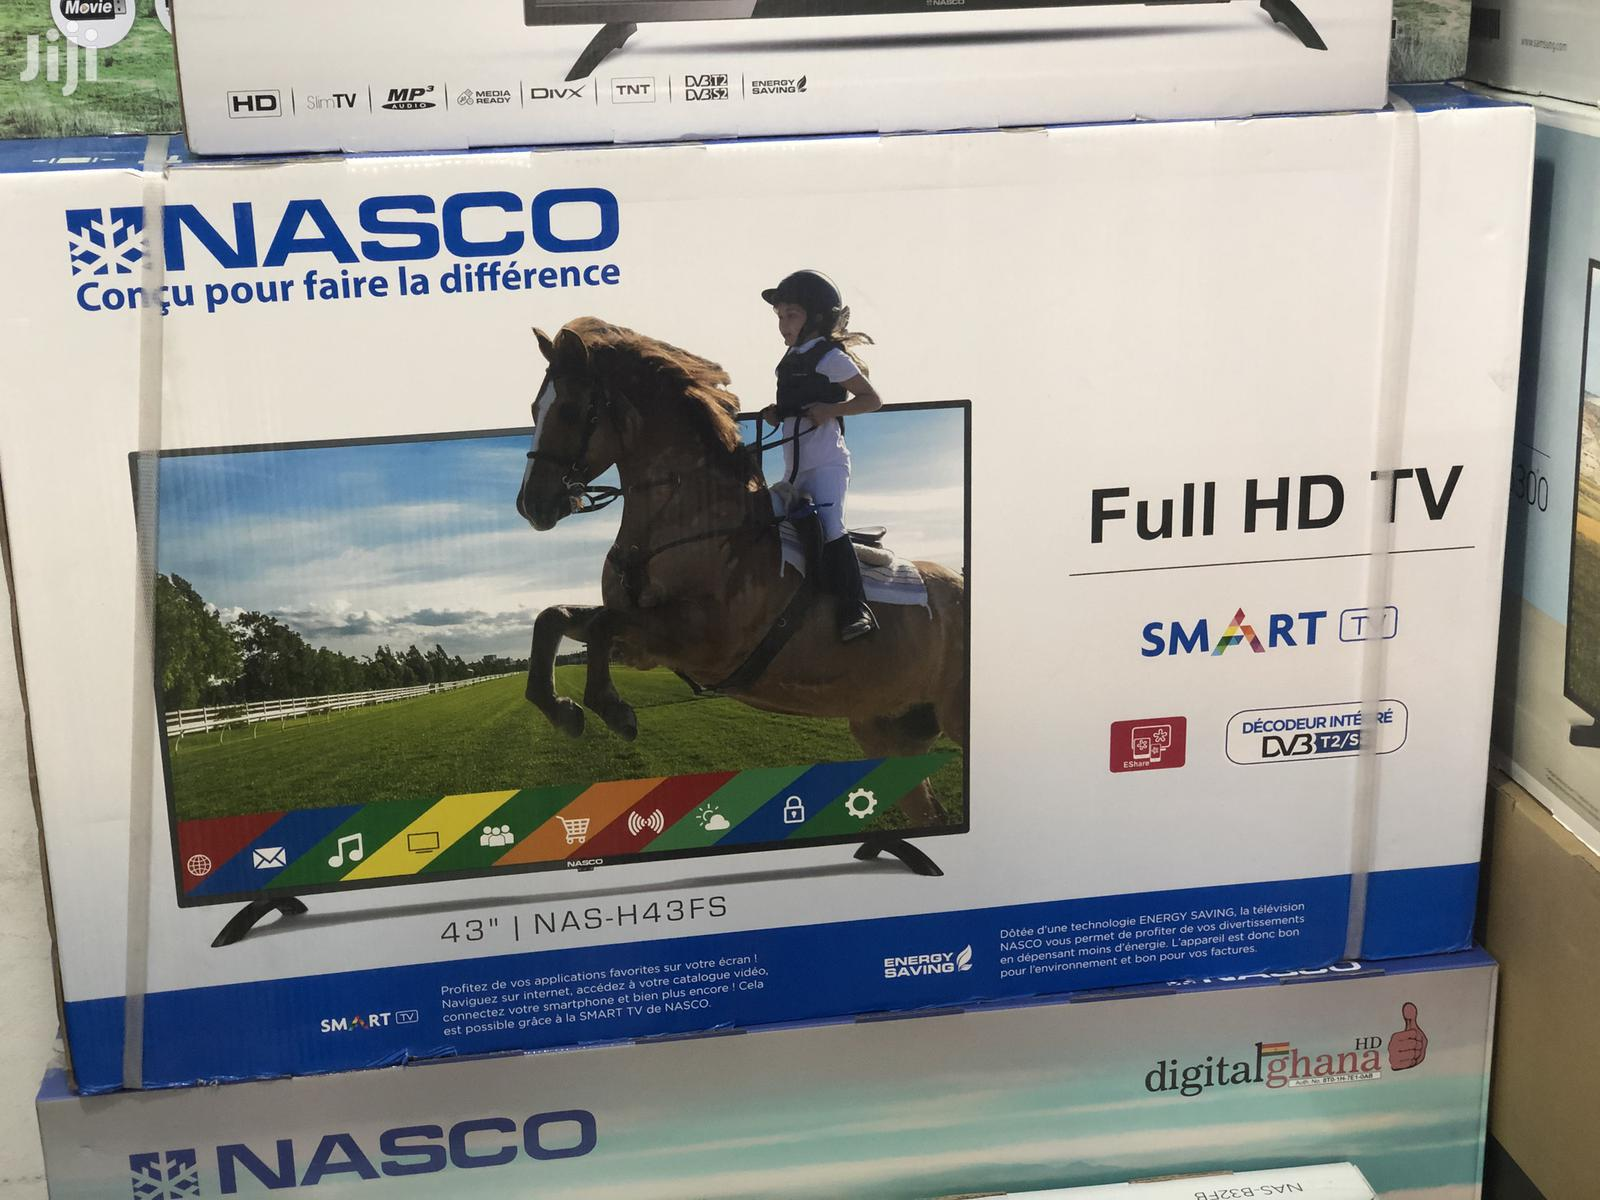 "Nasco 43"" Digital Satellite Smart Led Tv"